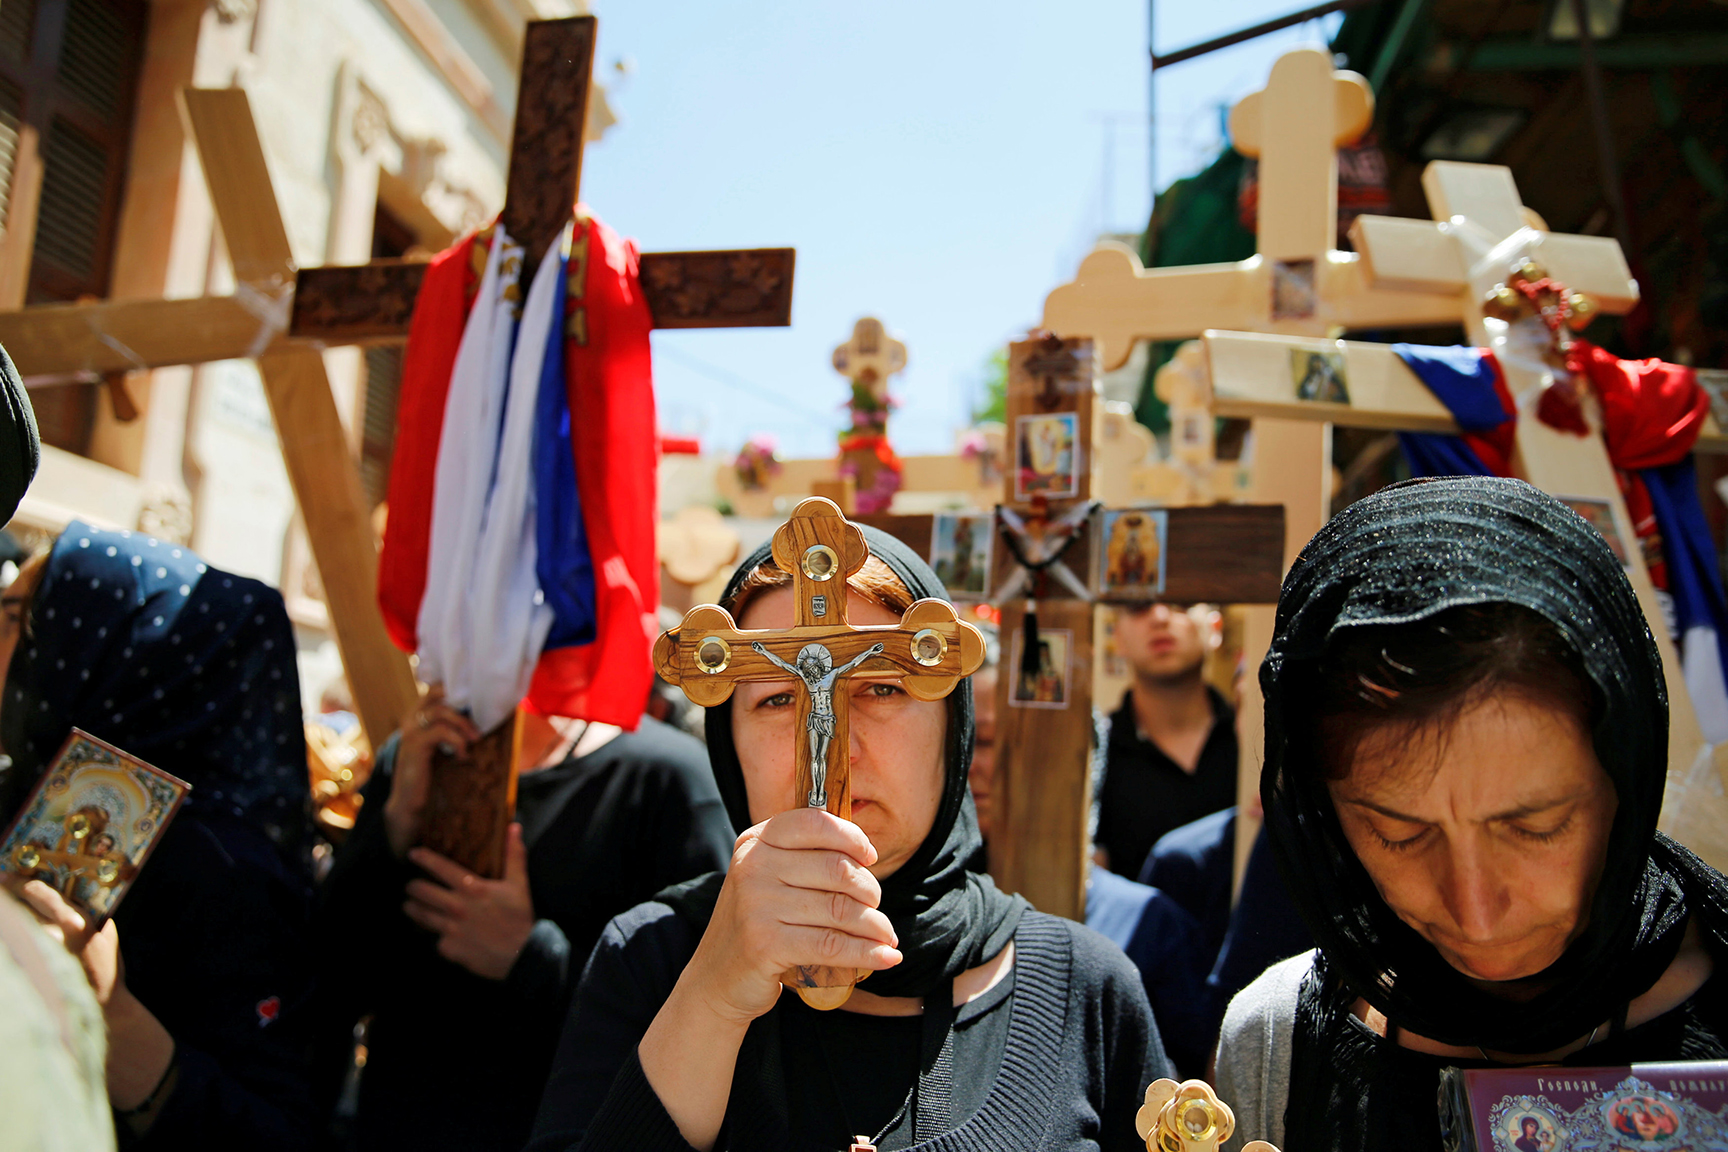 Orthodox Christian worshippers hold crosses before a procession along the Via Dolorosa on Good Friday during Holy Week in Jerusalem's Old City